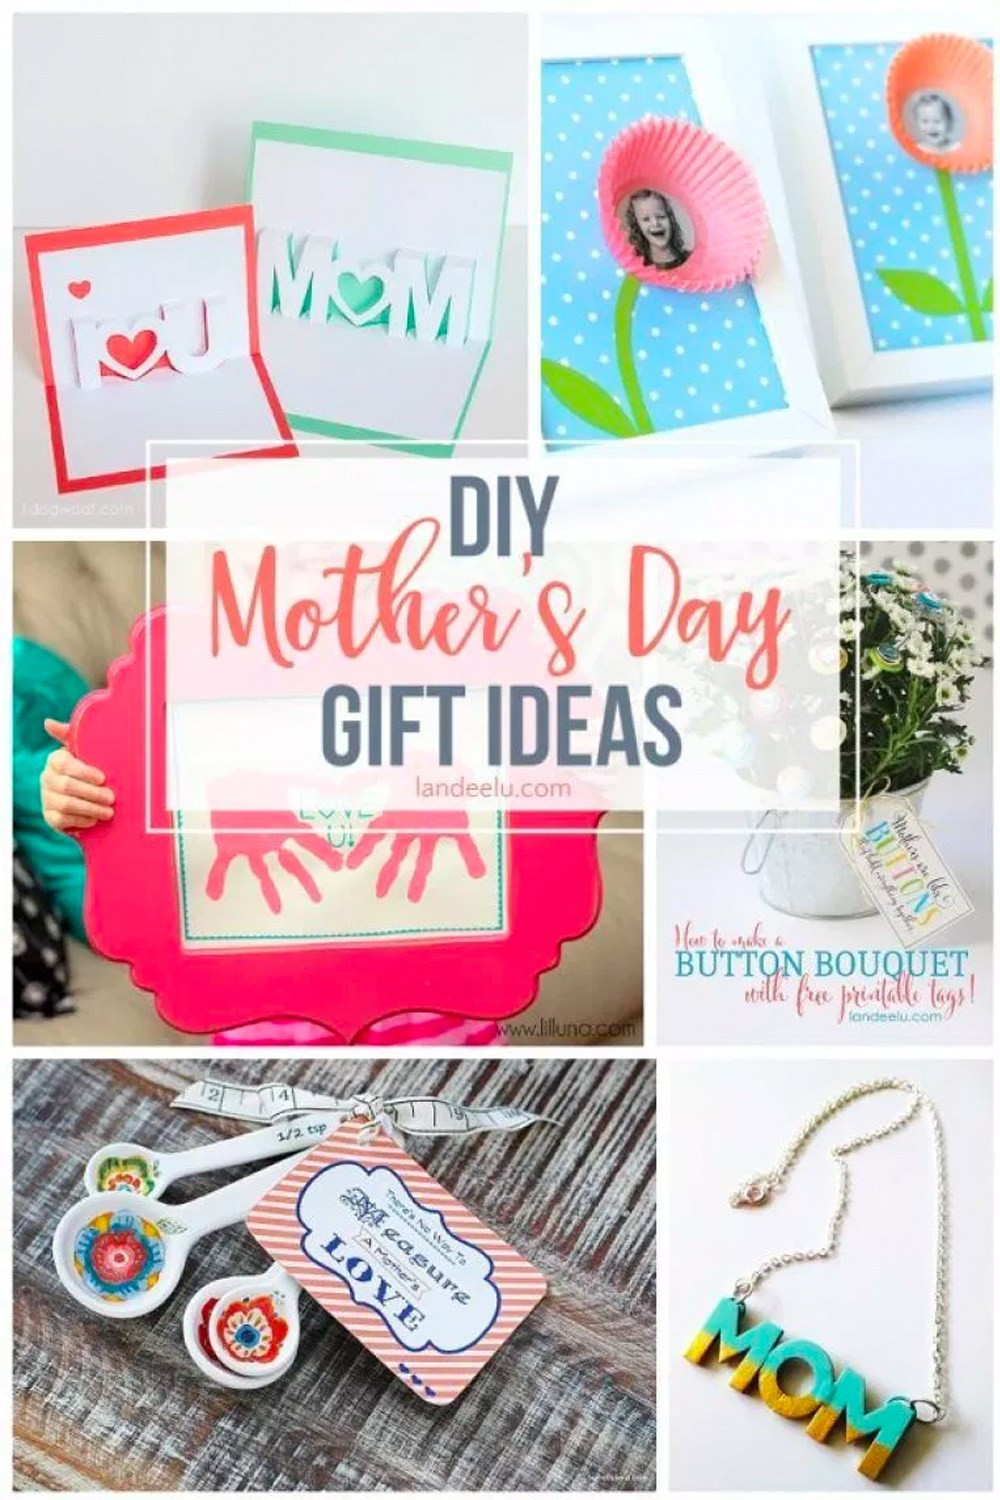 Best ideas about Mother'S Day Gift Ideas From Kids . Save or Pin DIY Mothers Day Gift Ideas landeelu Now.